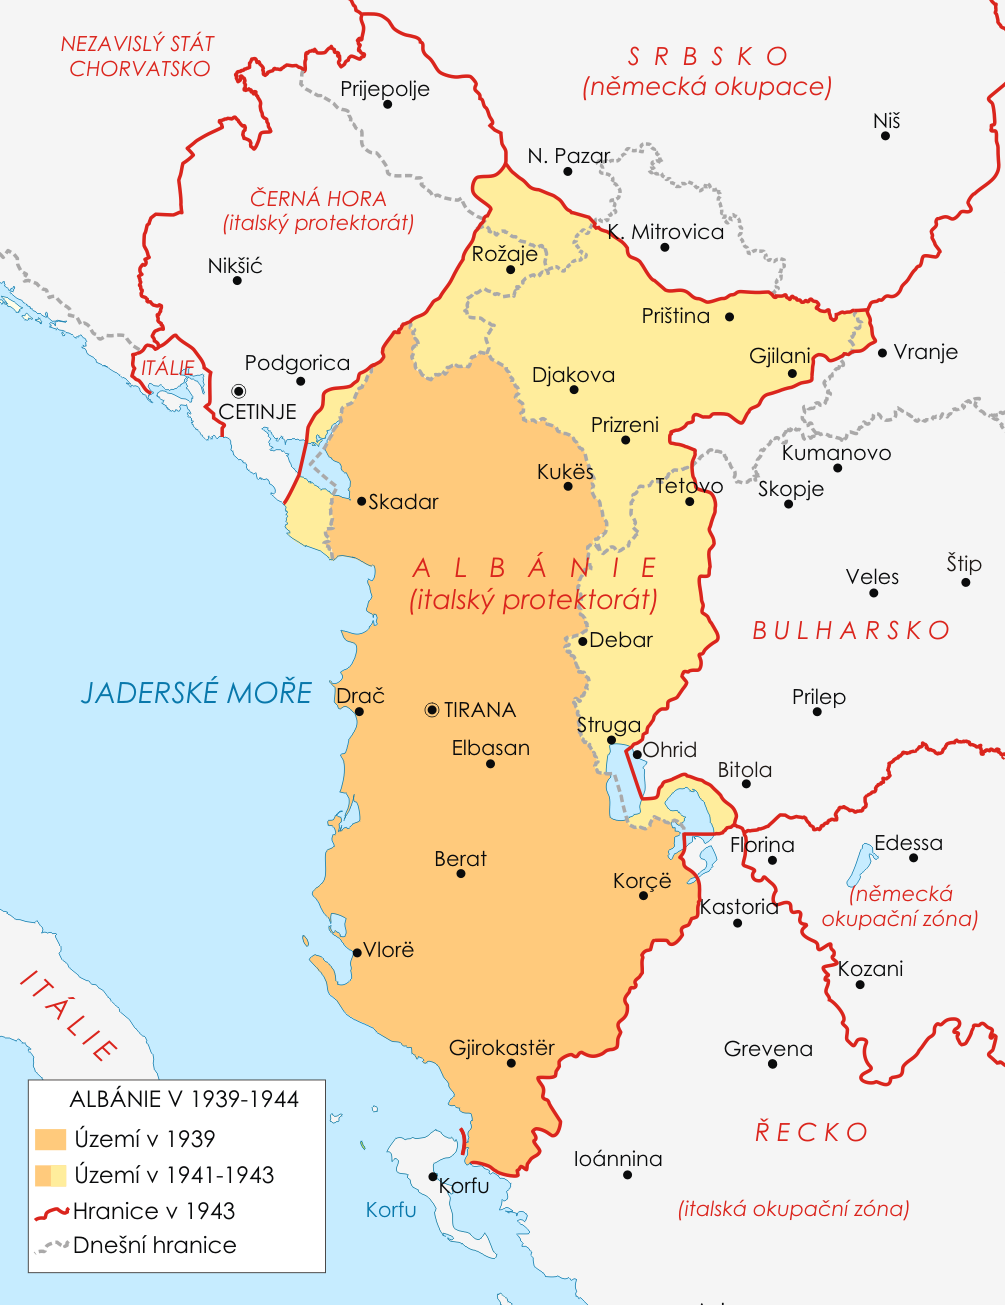 http://upload.wikimedia.org/wikipedia/commons/6/60/Map_of_Albania_during_WWII-CS.png